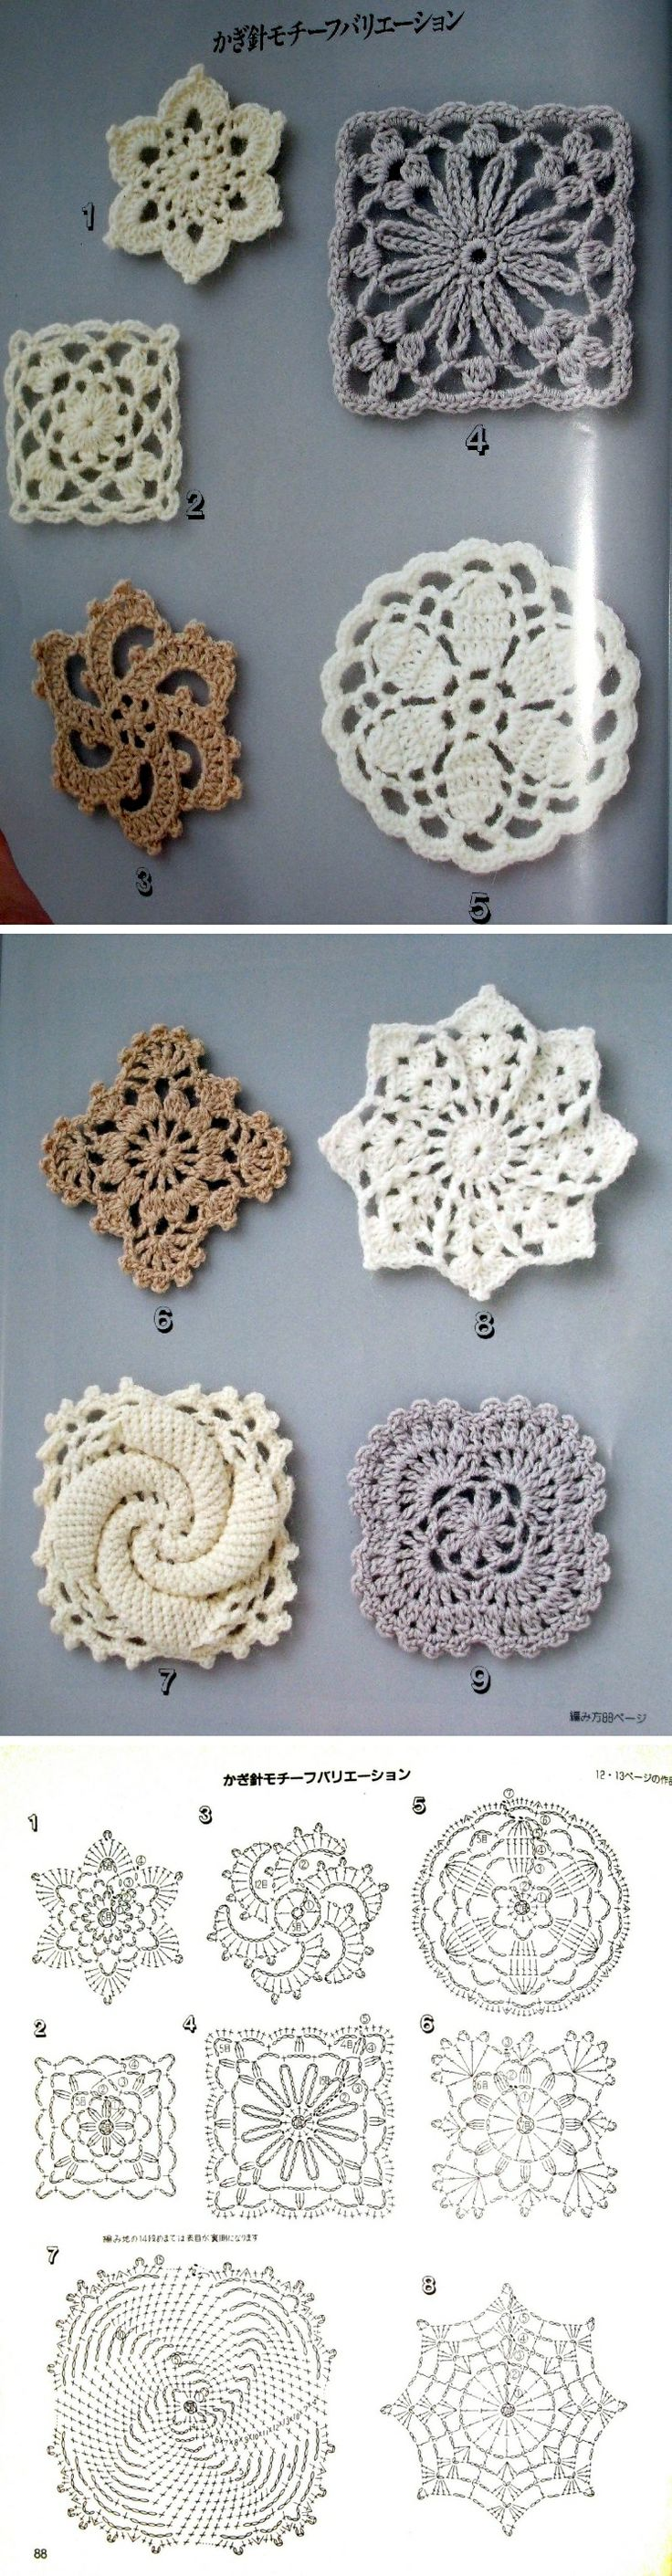 Crochet Patterns For Motifs : Top 25+ best Crochet motif ideas on Pinterest Crochet ...